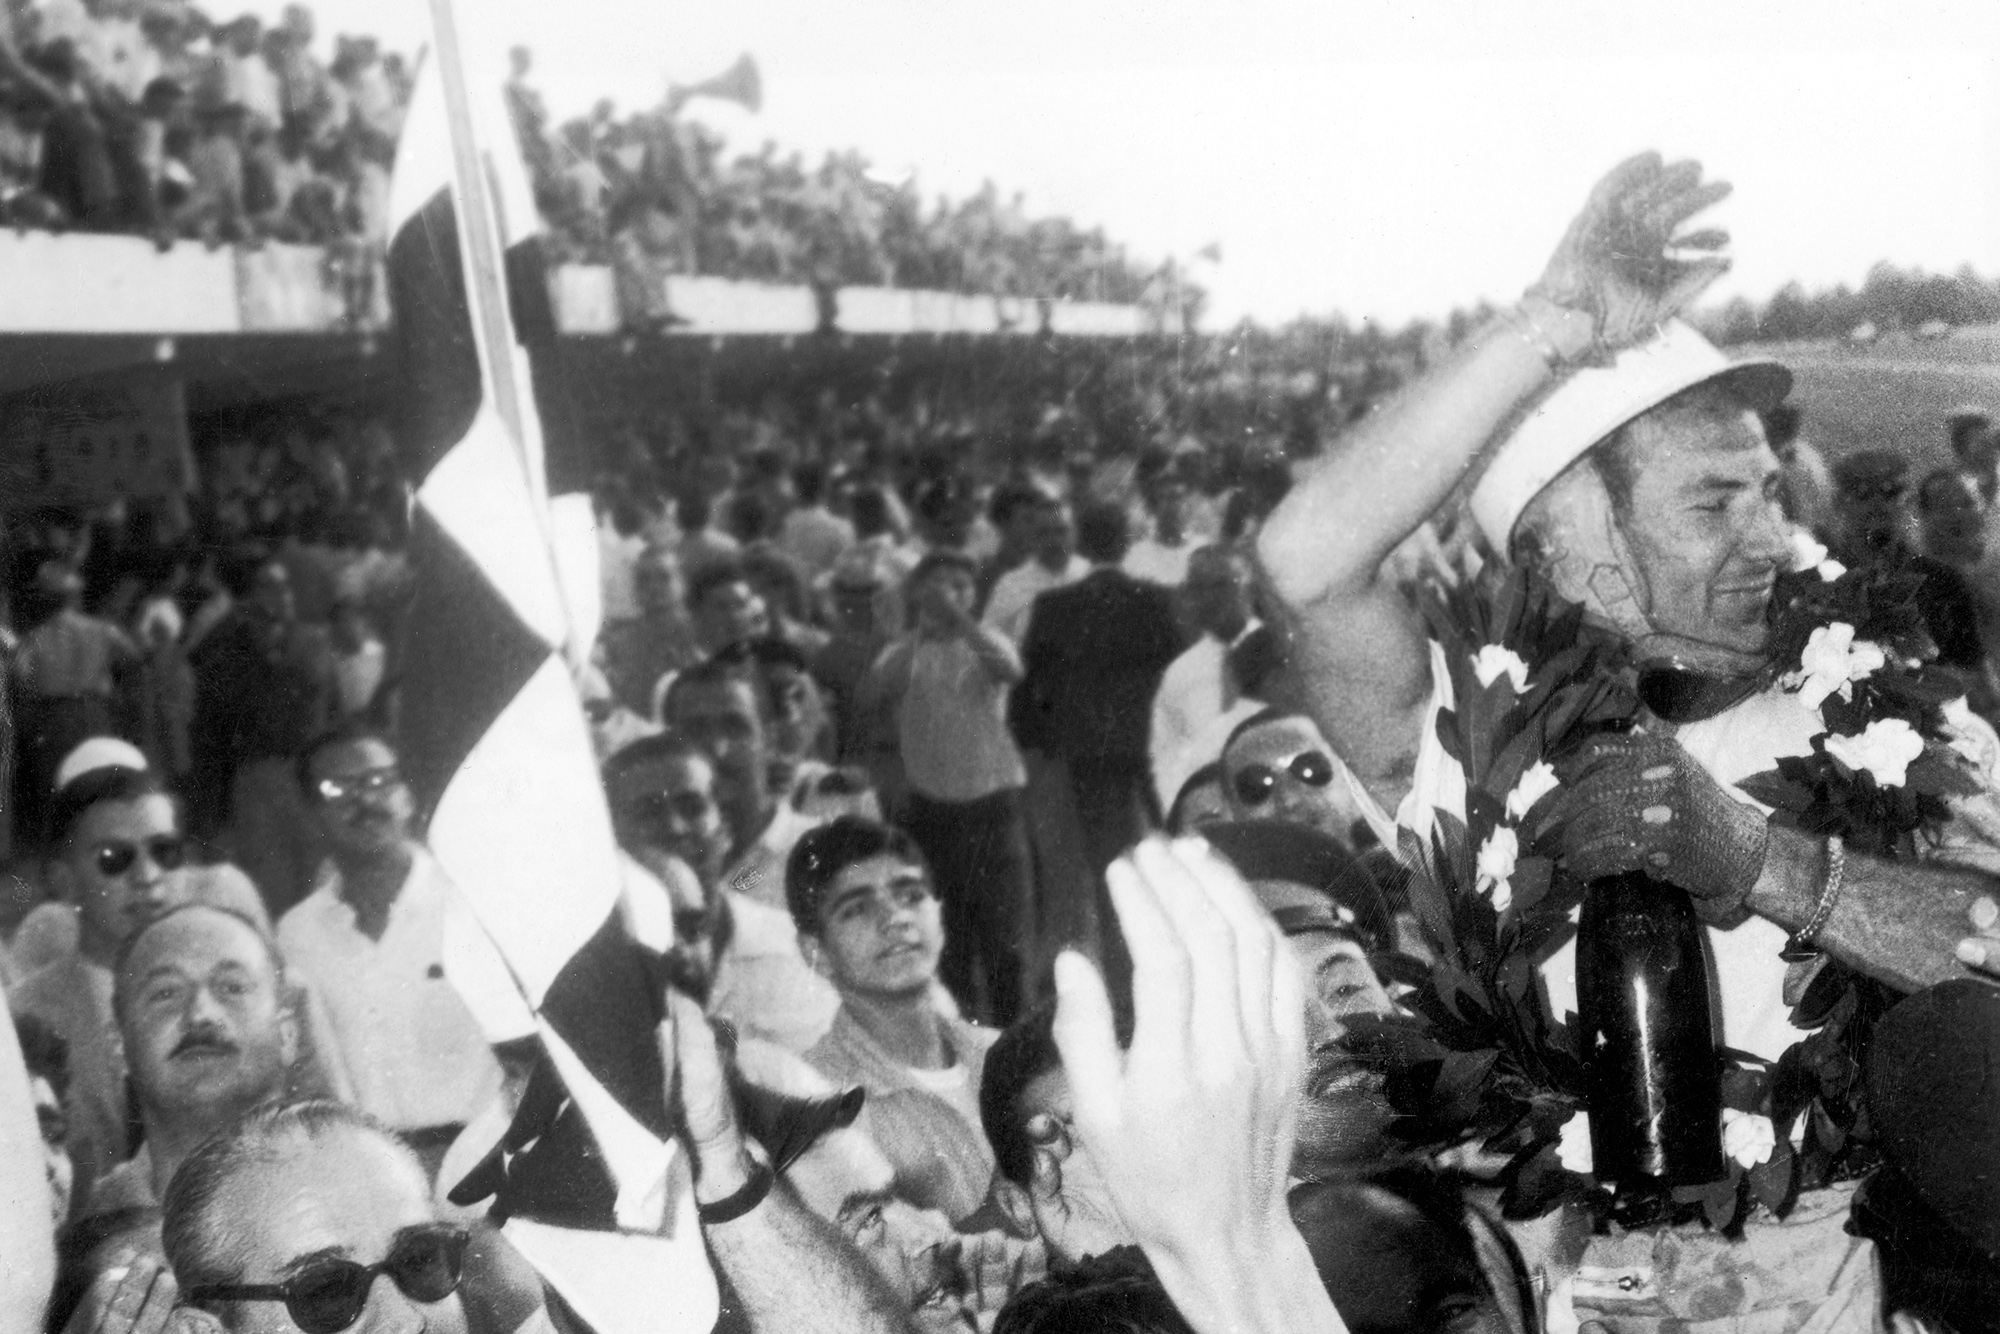 Stirling Moss celebrates victory in the 1958 Argentine Grand Prix